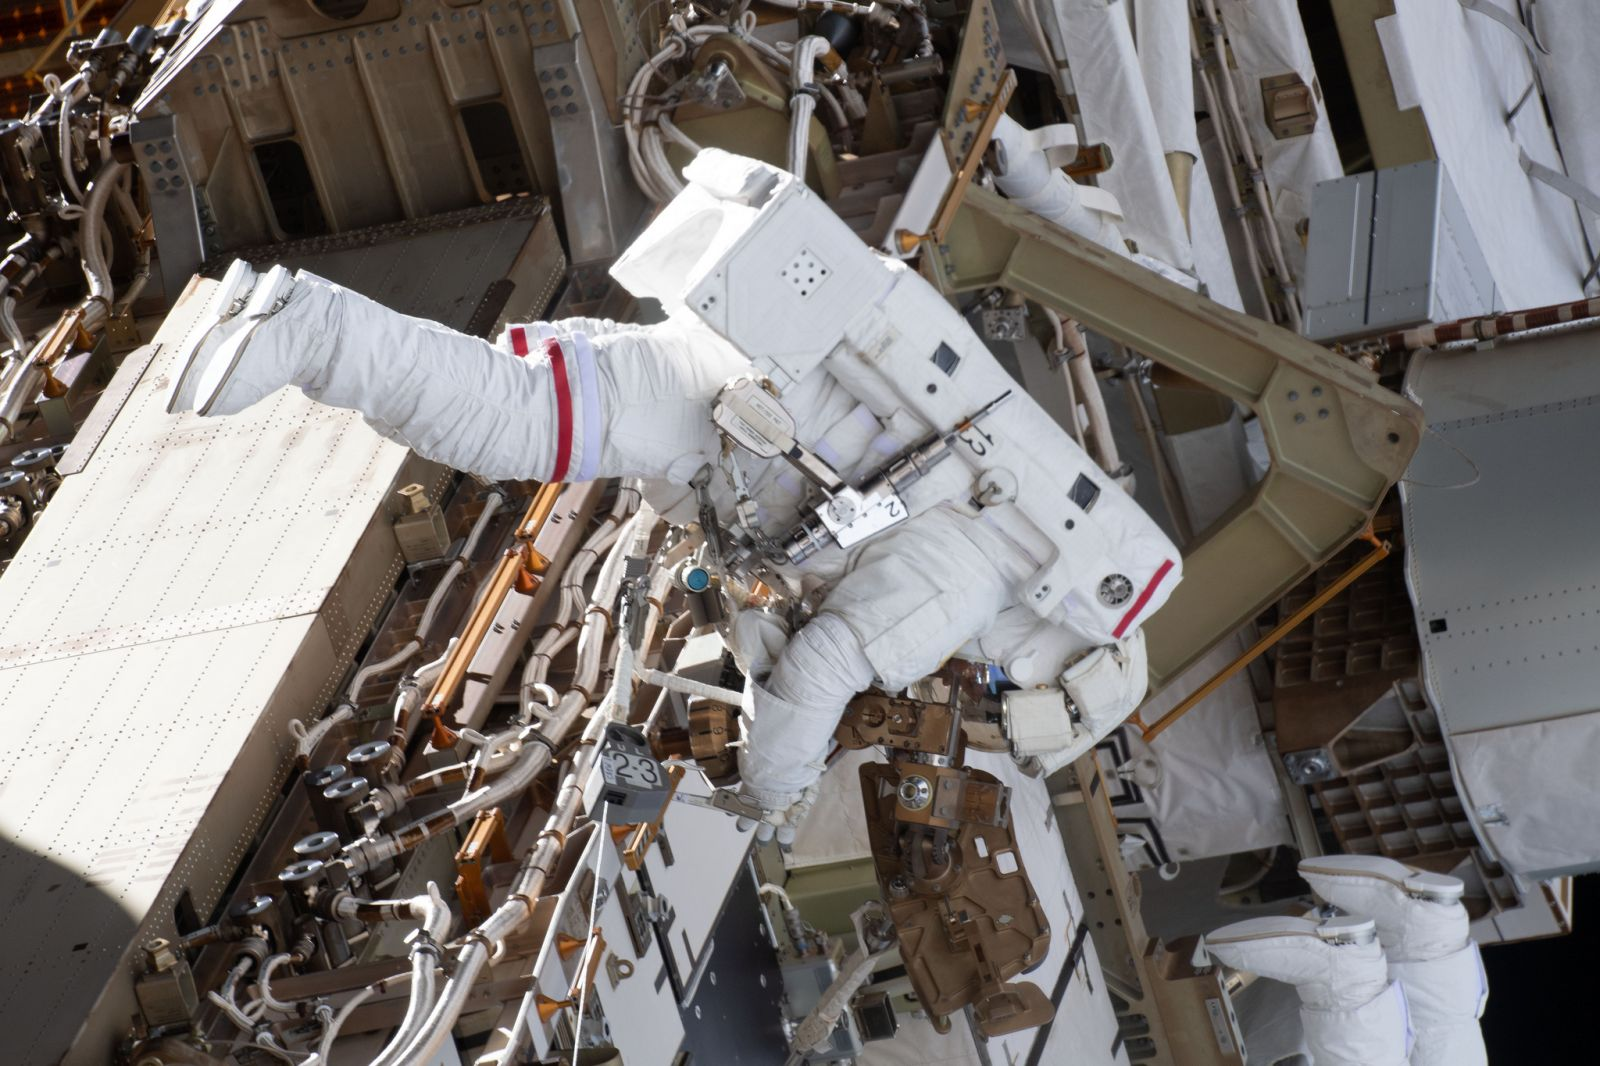 Anne McClain during her first spacewalk, U.S. EVA-52, on March 22, 2019. Photo Credit: NASA